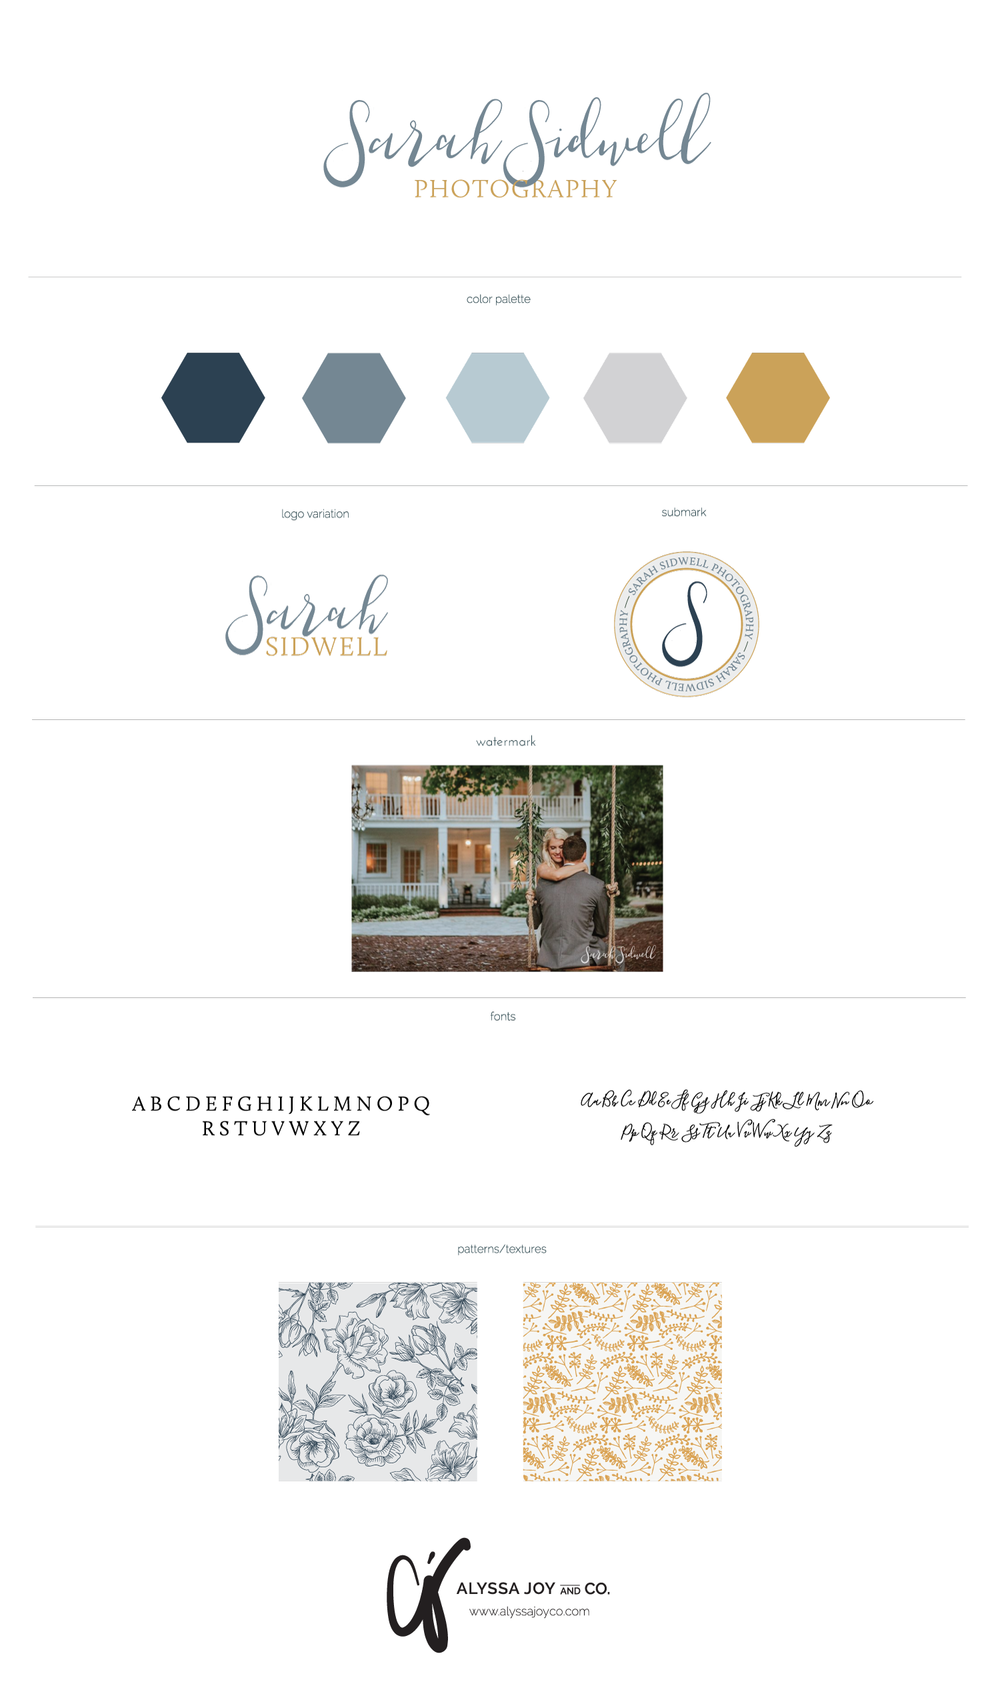 Alyssa Joy & Co. || Brand Design for Sarah Sidwell Photography